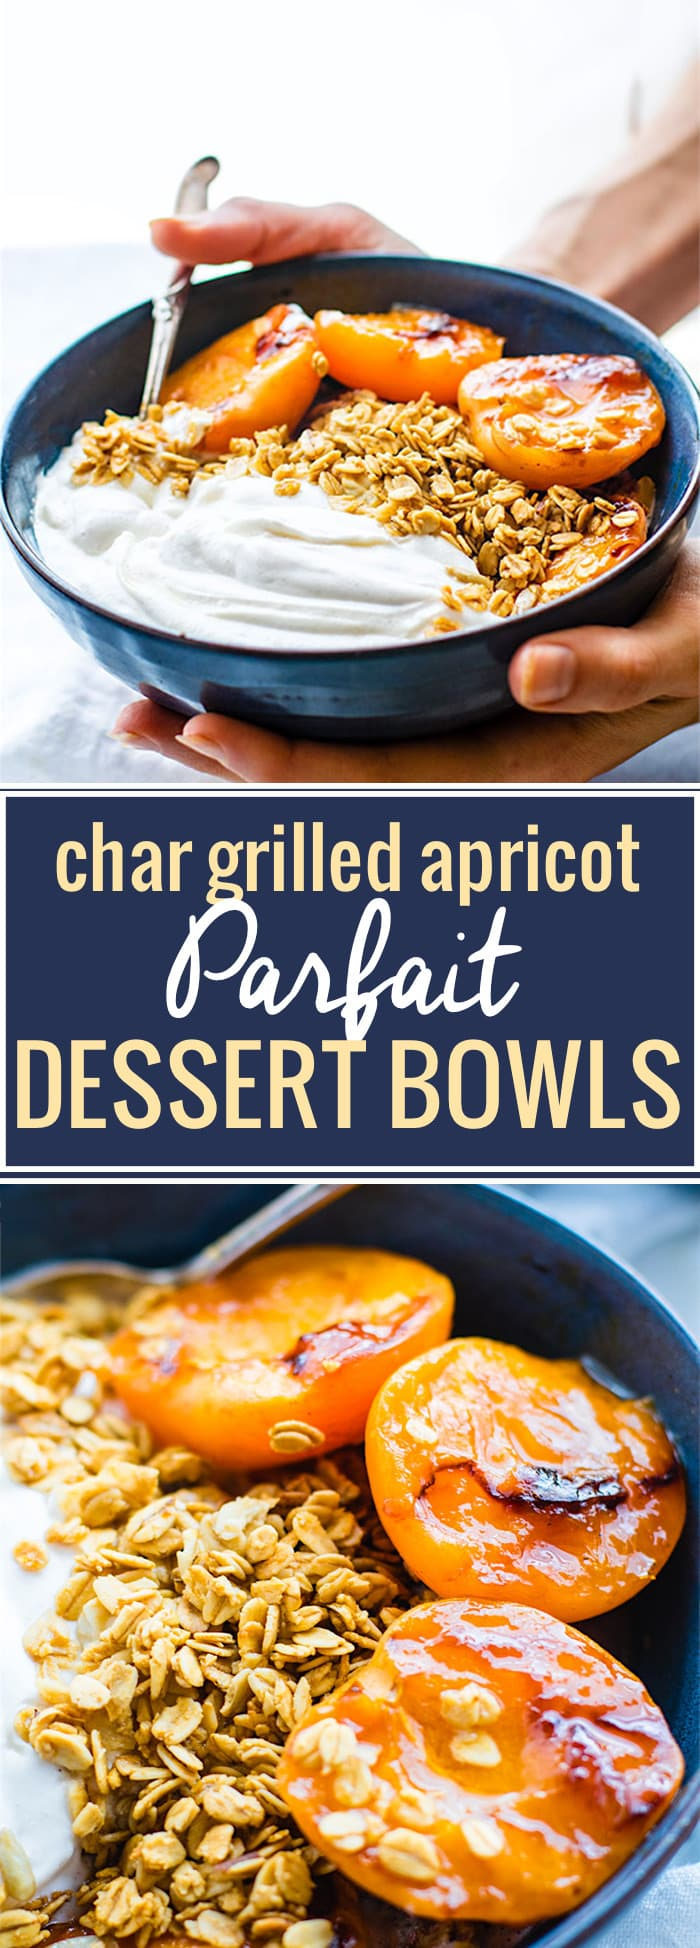 Gluten Free Char-grilled apricot parfait dessert bowls! These dessert bowls are great for dessert or breakfast. A light and simple dessert that's layered across with glazed grilled apricots, whipped coconut cream, and wholesome granola. Vegan Friendly. @cottercrunch